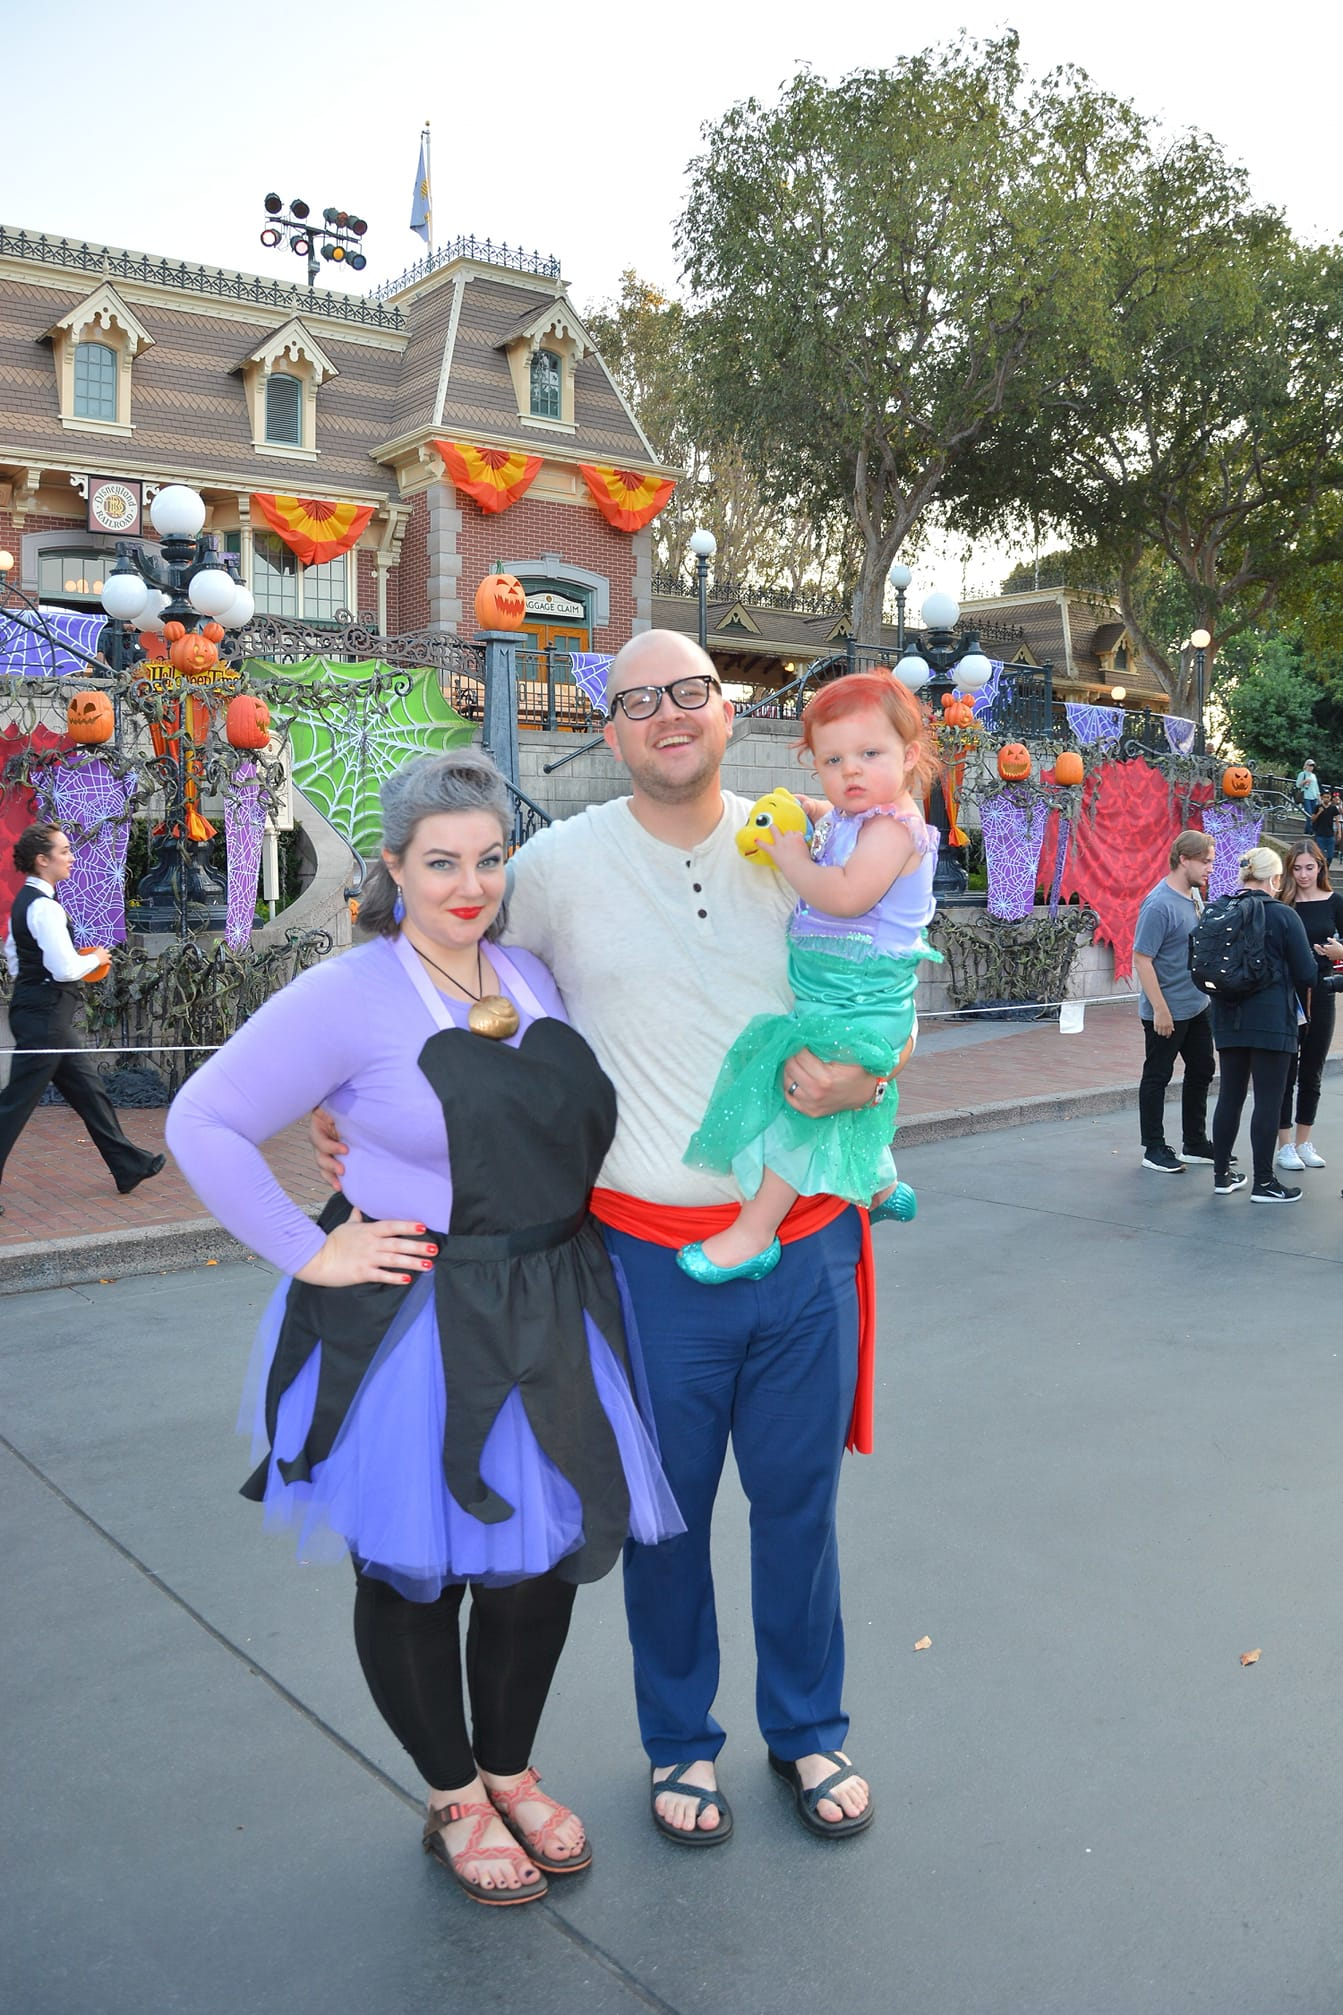 Family dresses as characters from Little Mermaid smiles on Disneyland's main street.